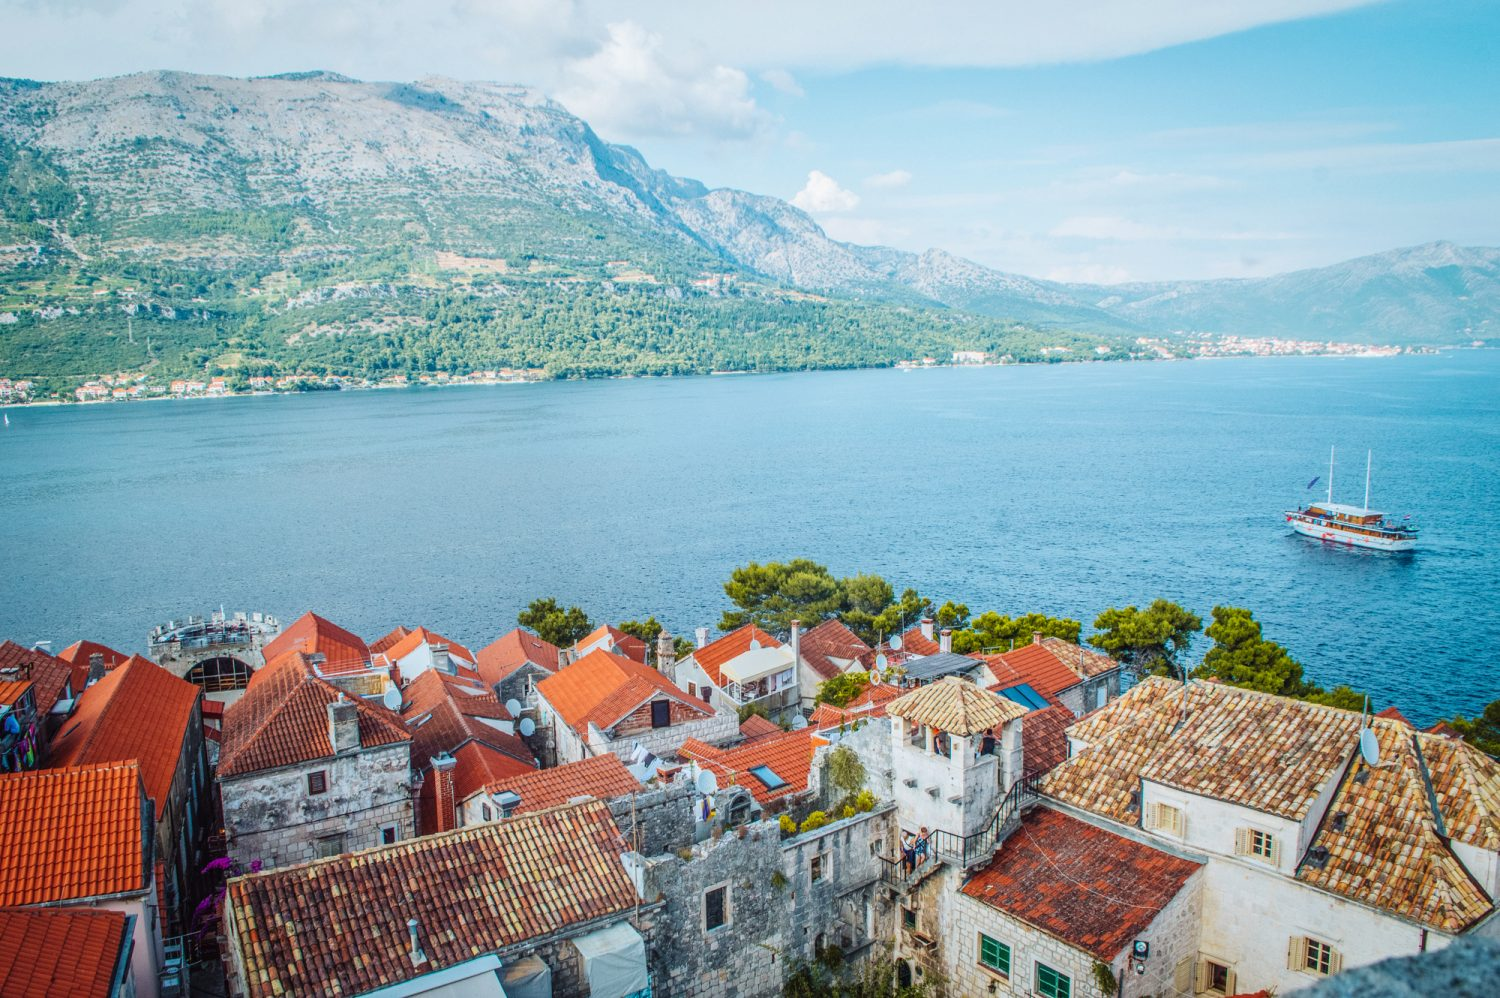 WOW absolutely stunning photos from Croatia! These photos prove why Croatia should be on your bucket list (and provides inspiration for where to go in Croatia too). #Croatia #Europe #Travel #Photography